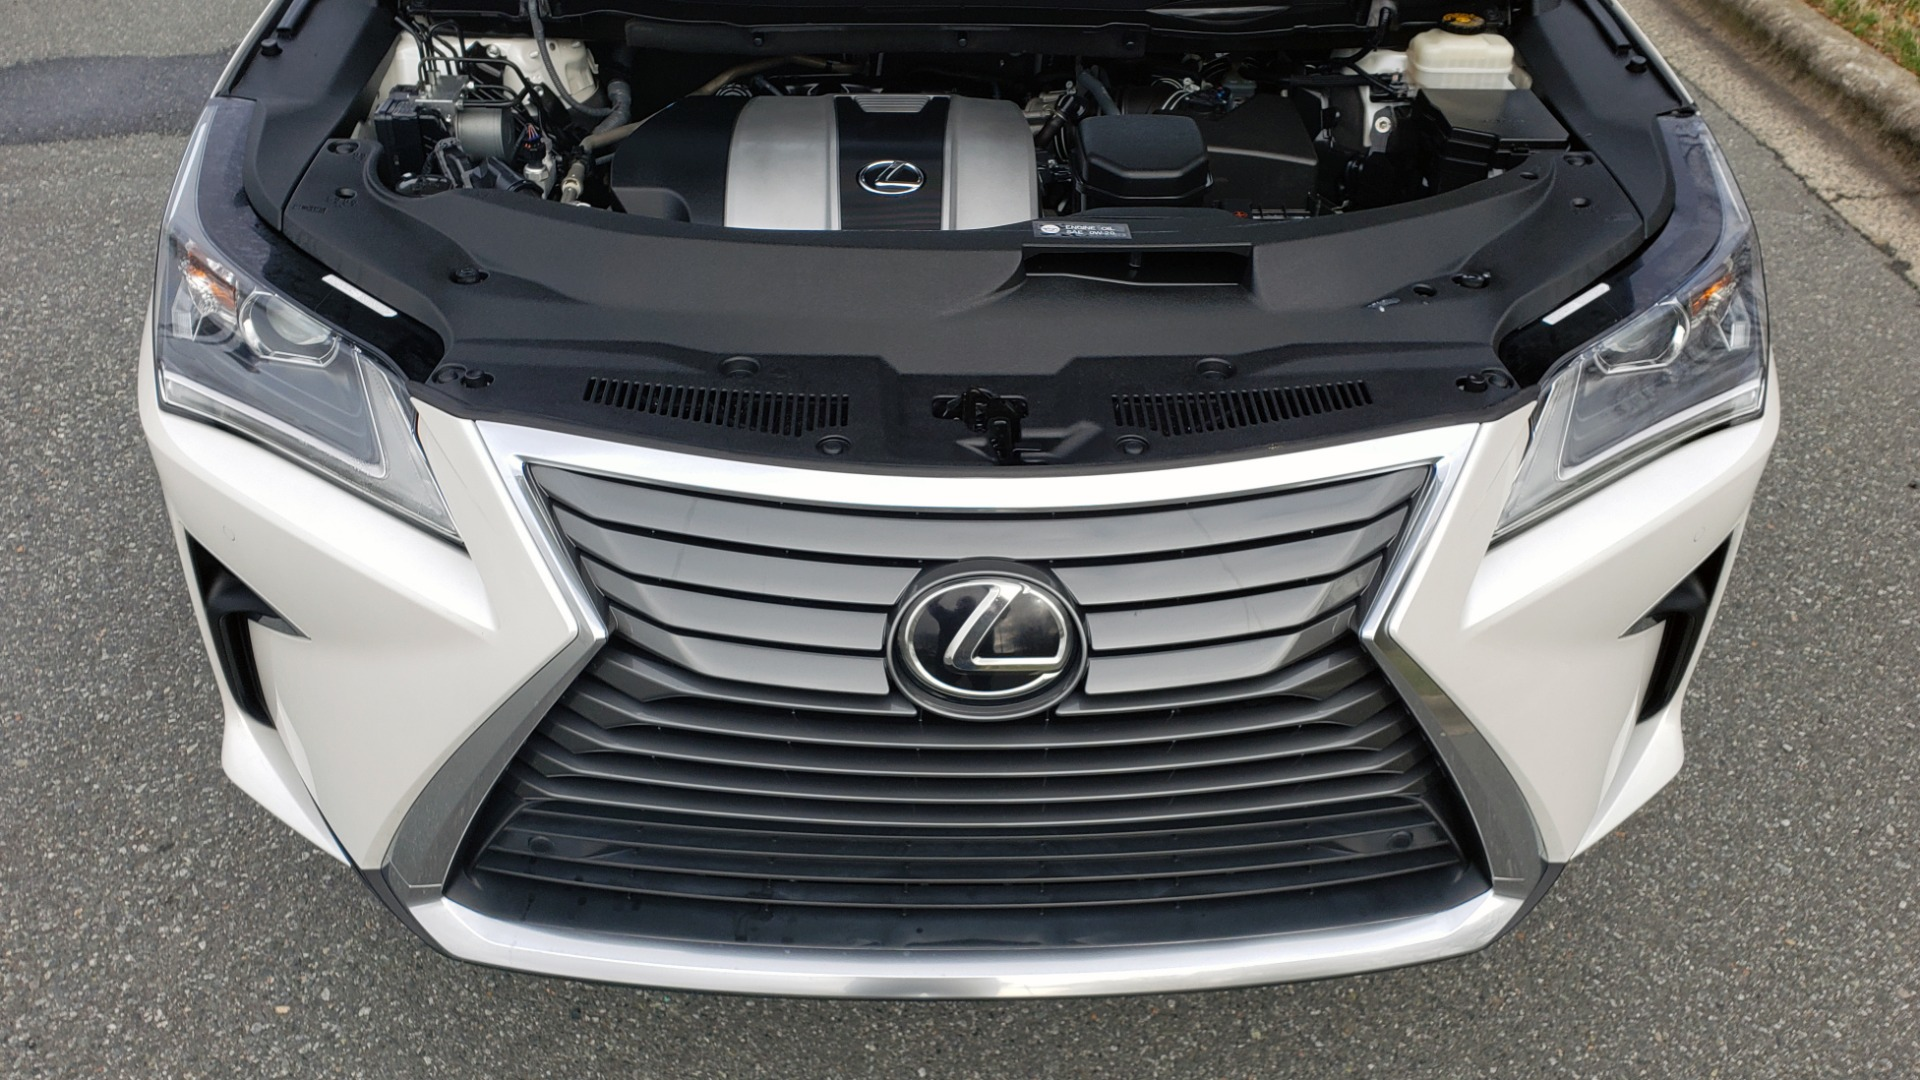 Used 2017 Lexus RX 350 PREMIUM / BSM / SNRF / VENT SEATS / REARVIEW for sale Sold at Formula Imports in Charlotte NC 28227 10